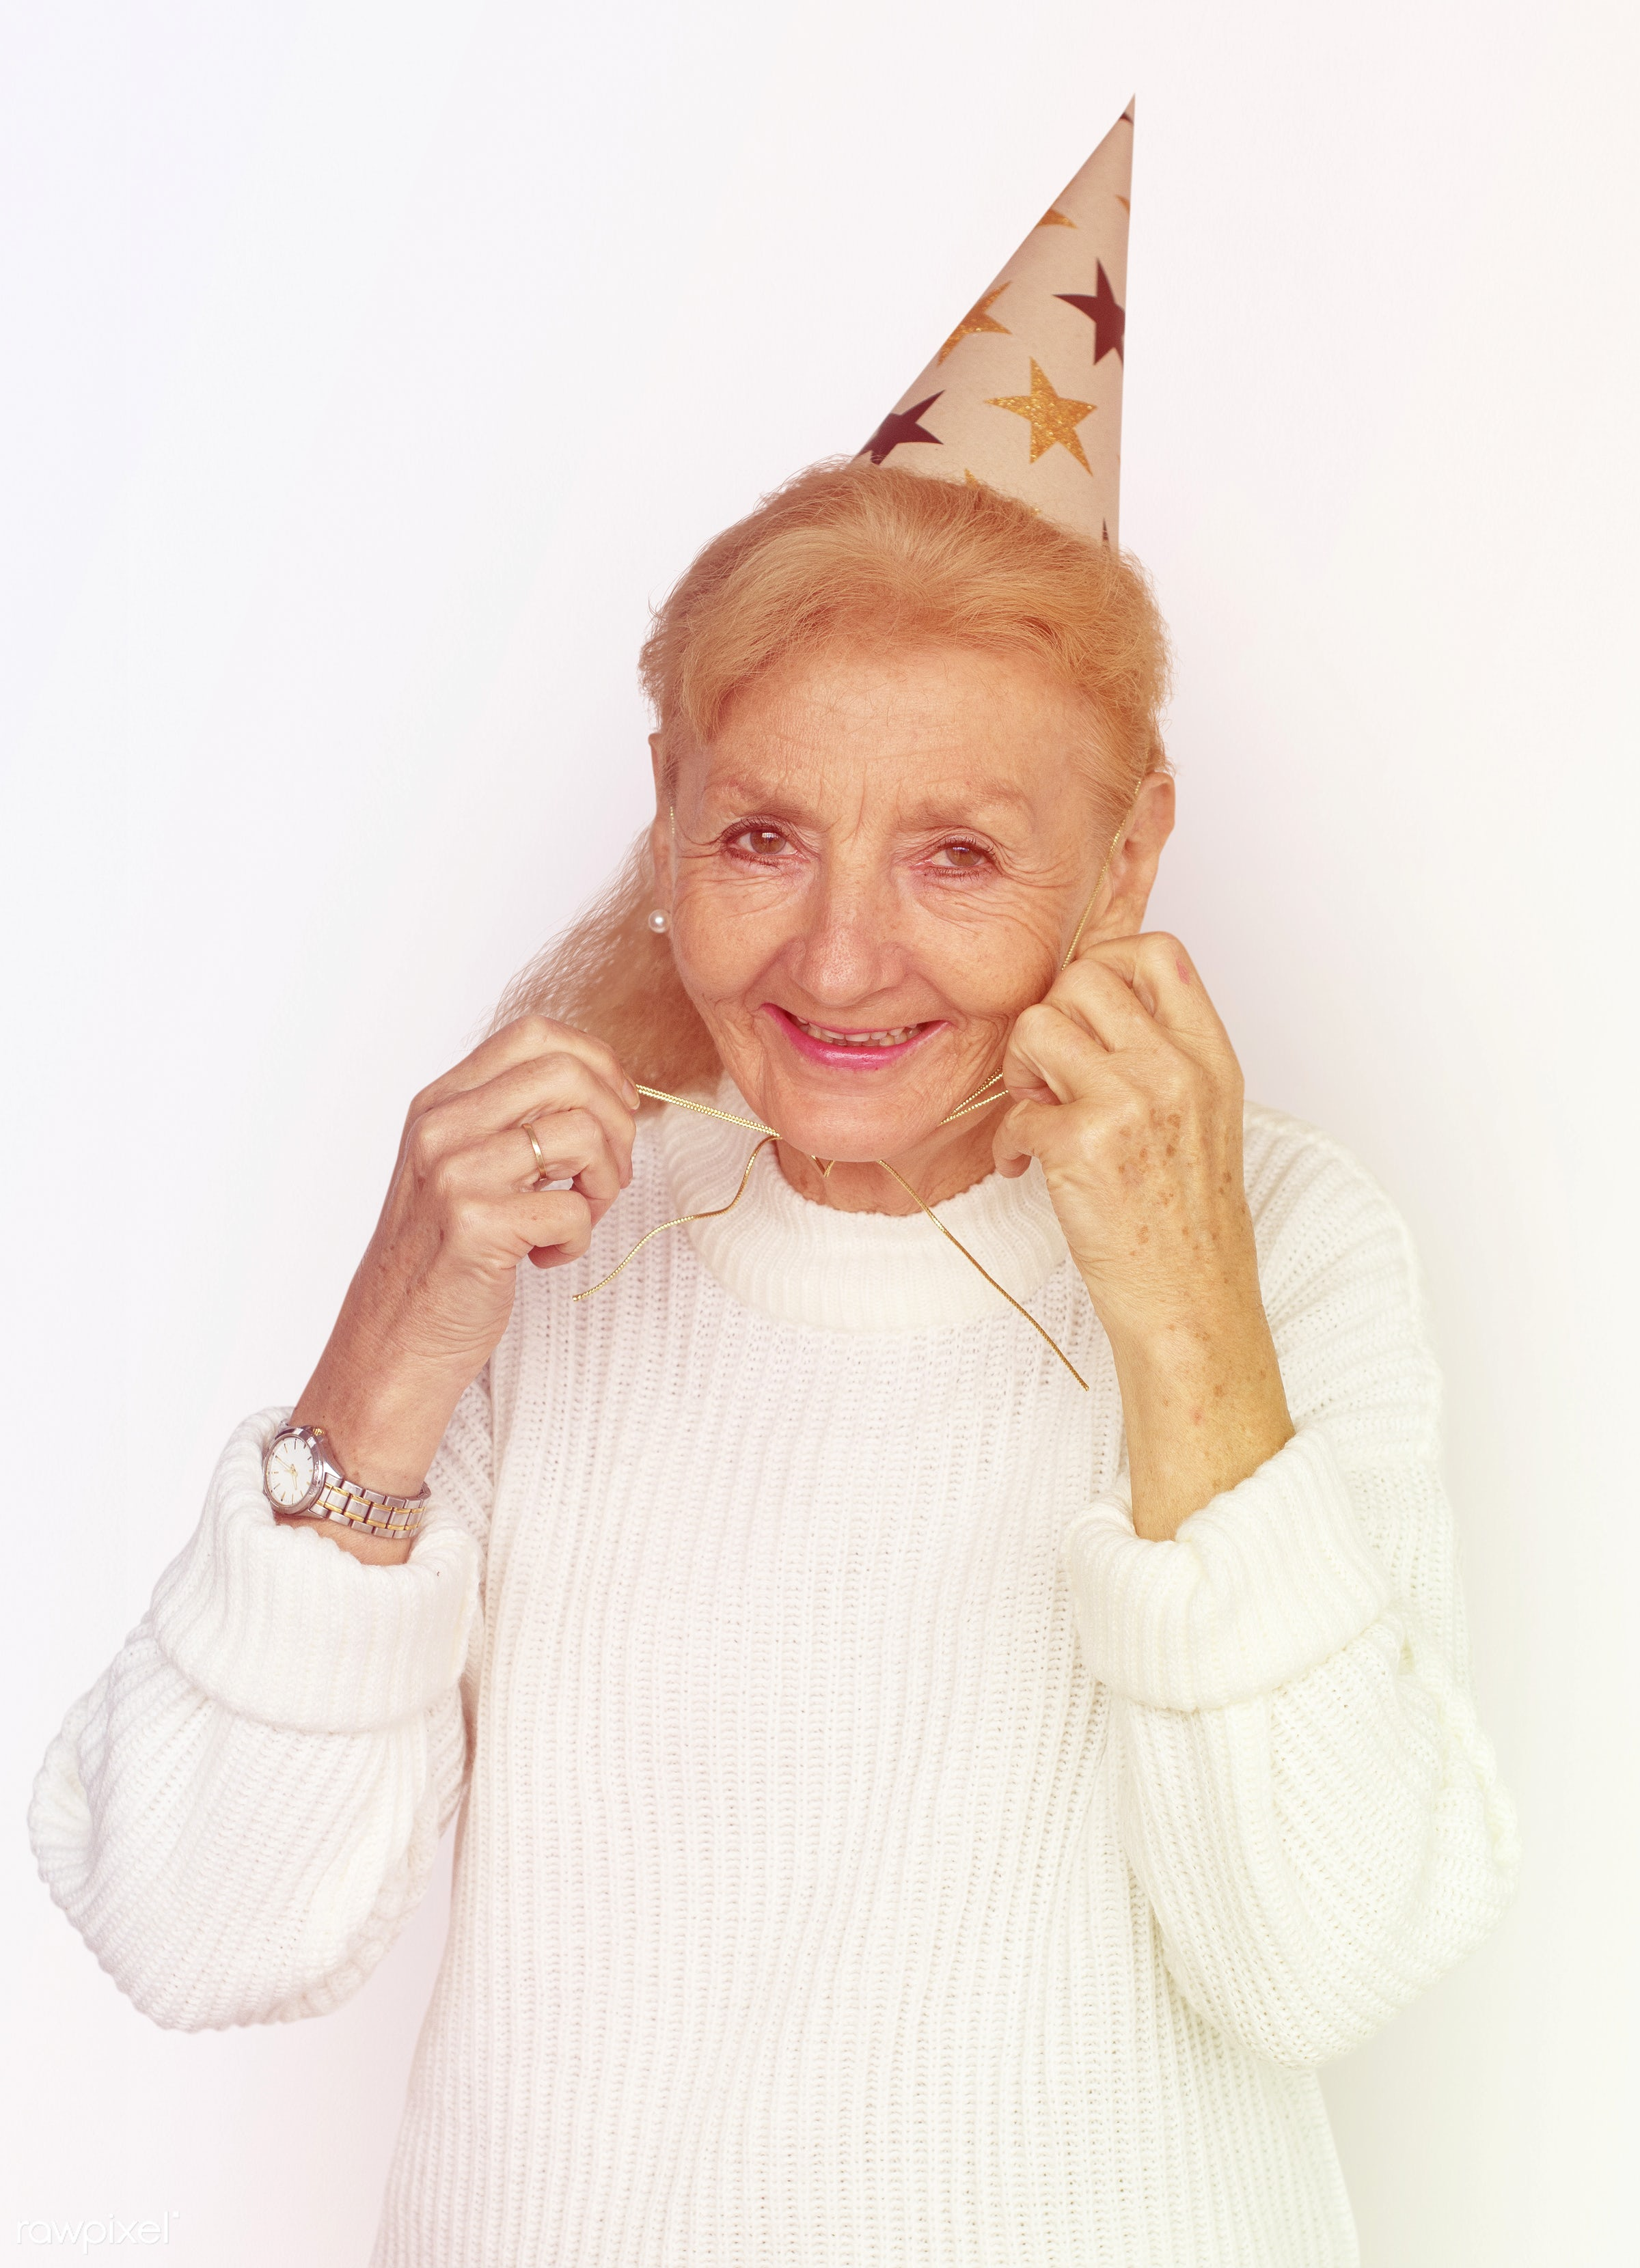 studio, expression, old, person, party, race, people, caucasian, hat, retirement, woman, event, westerner, positive,...